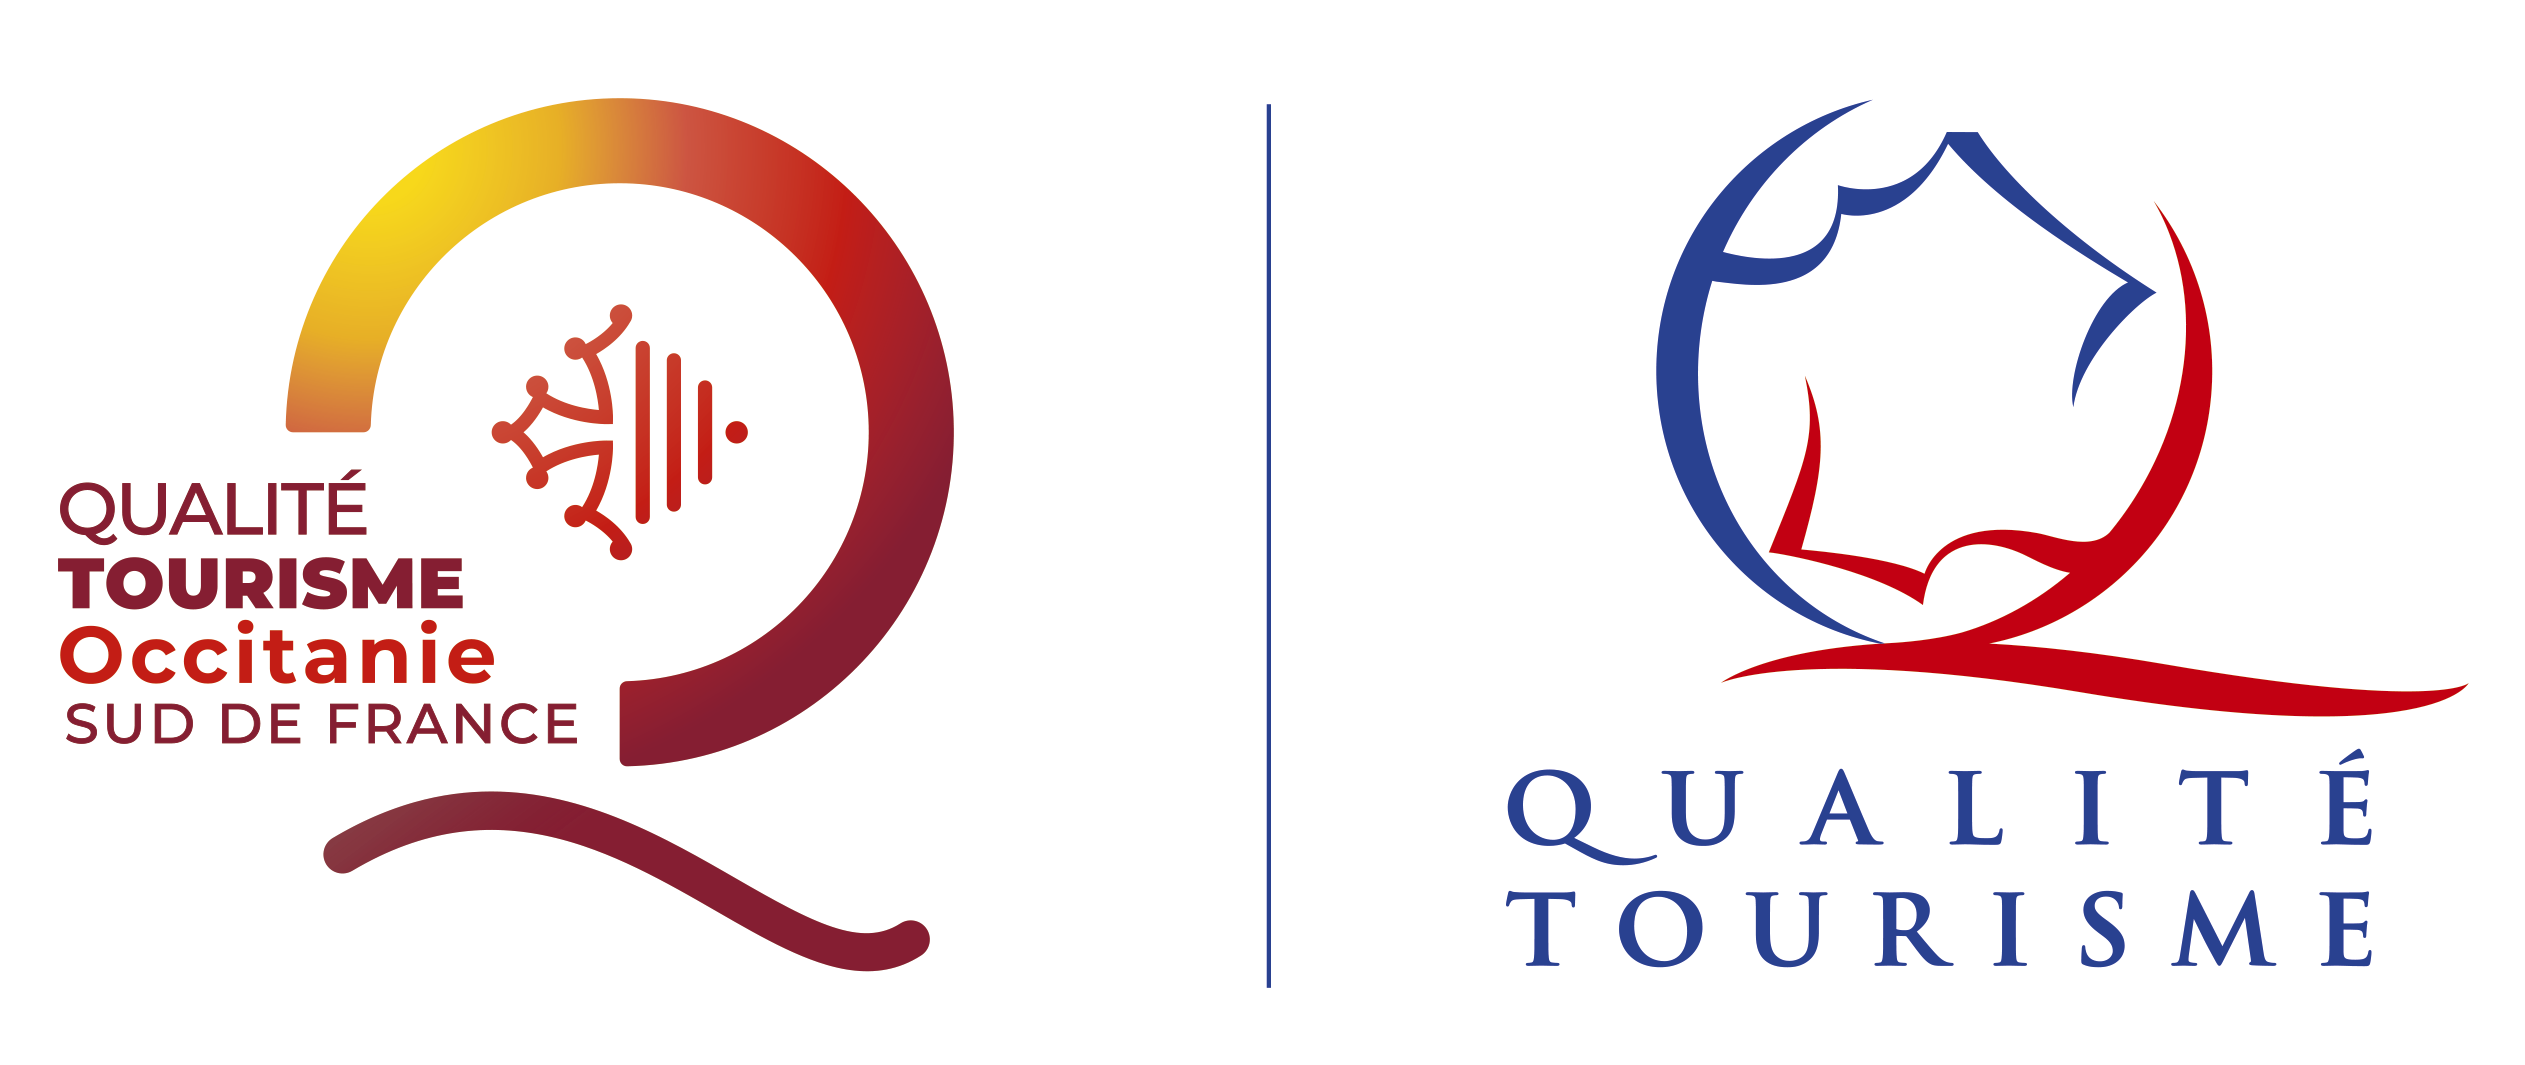 Qualite Tourisme Sud de France Occitanie